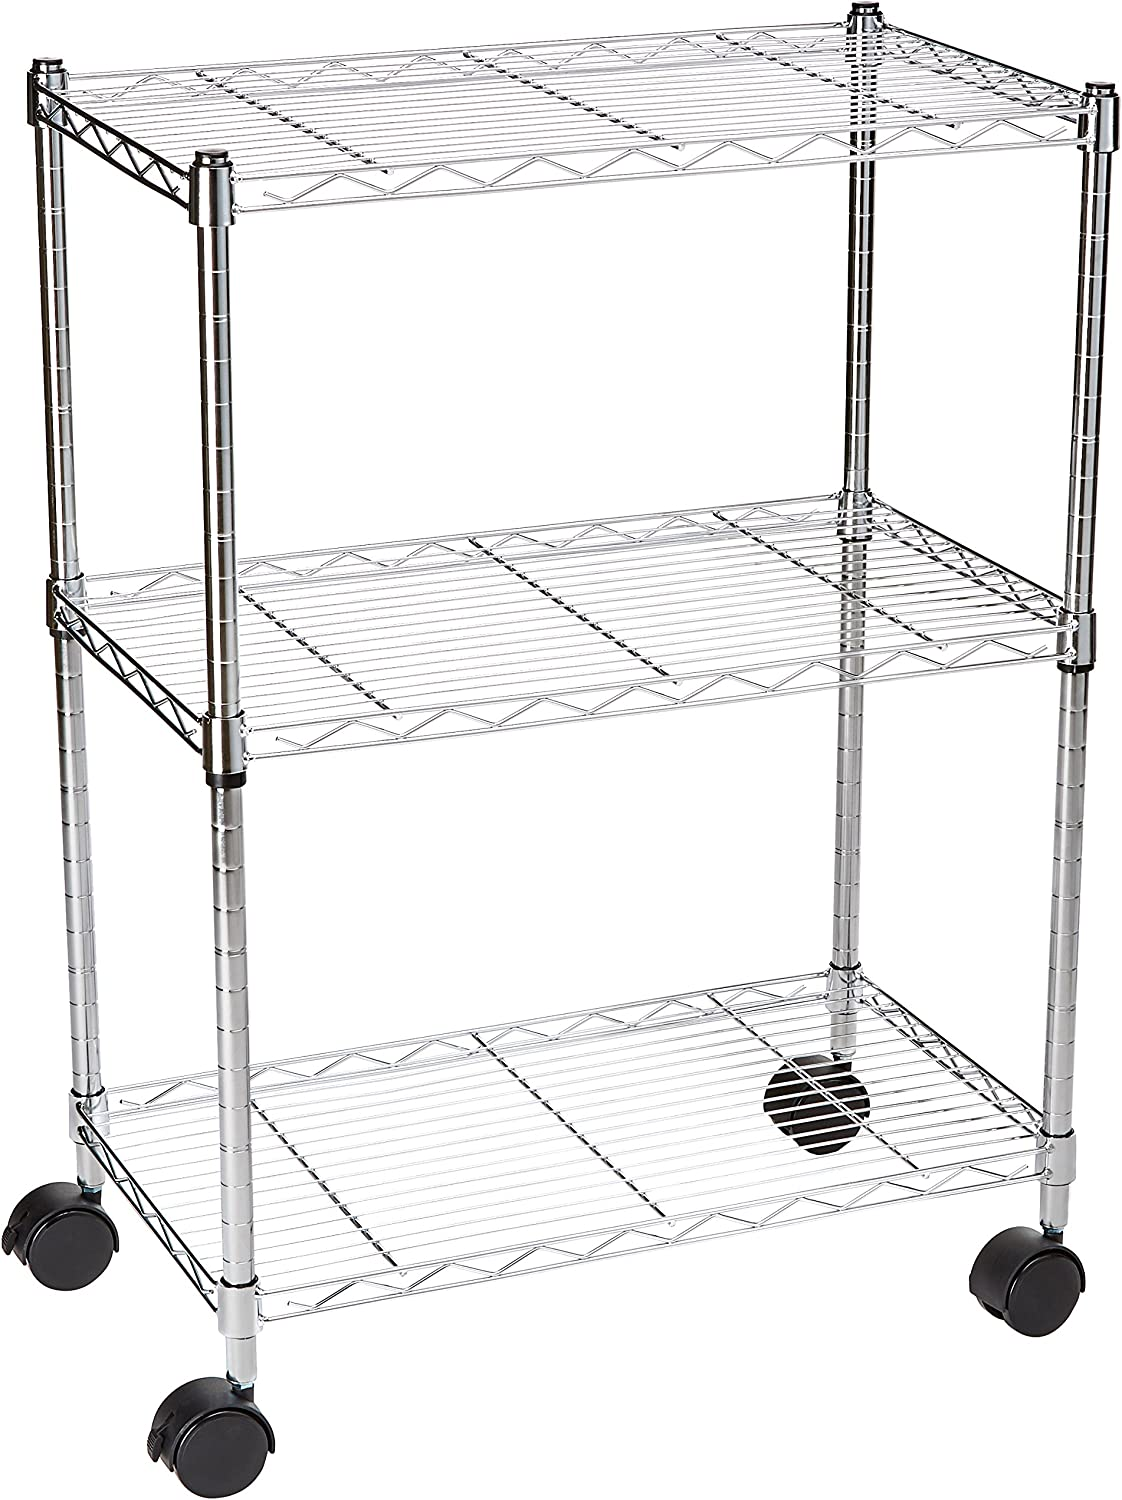 "AmazonBasics 3-Shelf Shelving Storage Unit on 3"" Wheel Casters, Metal Organizer Wire Rack"